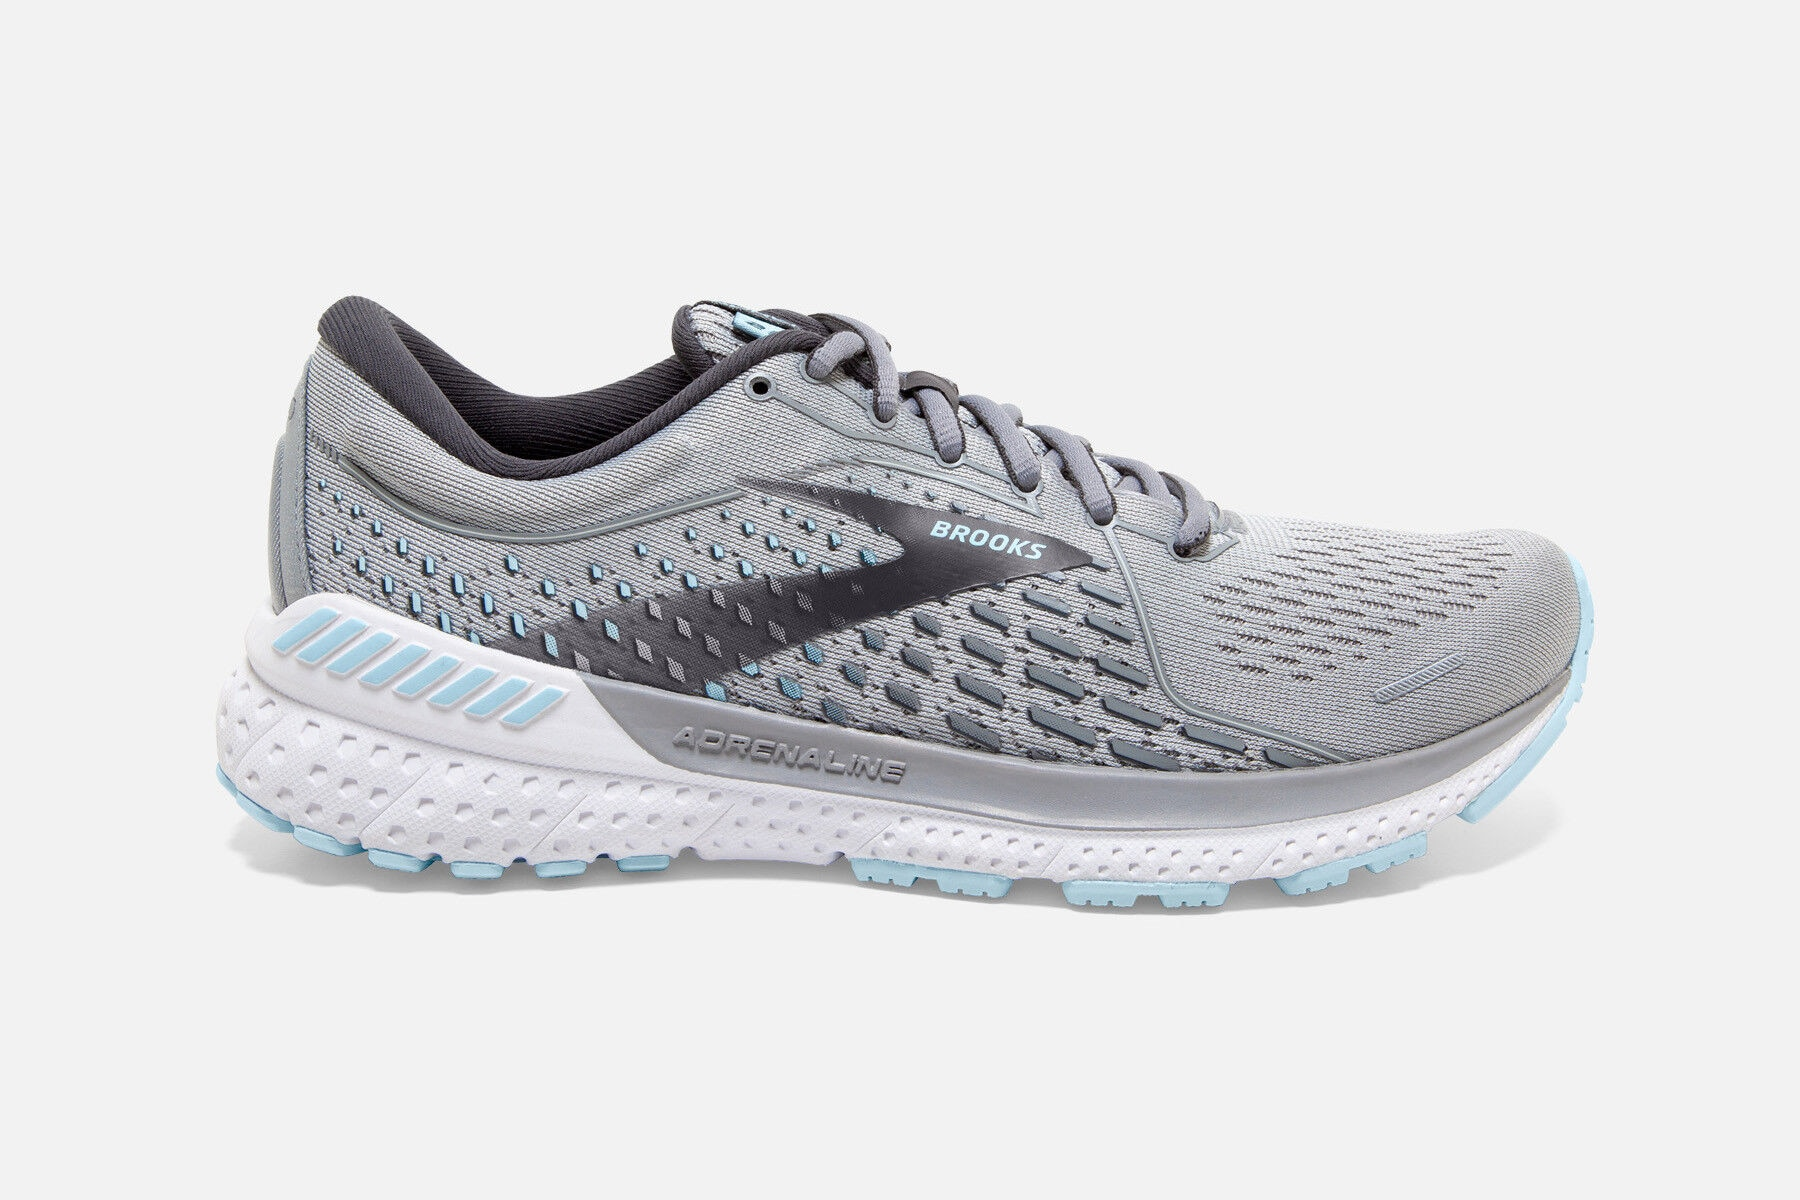 brooks adrenaline womens